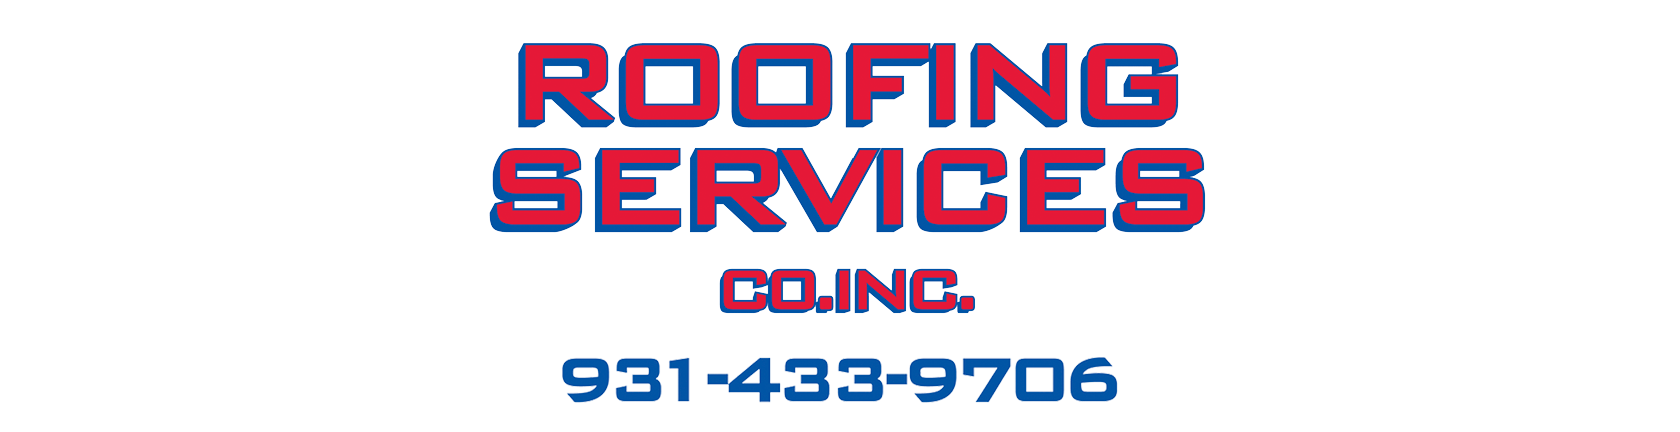 Roofing Services Co Inc